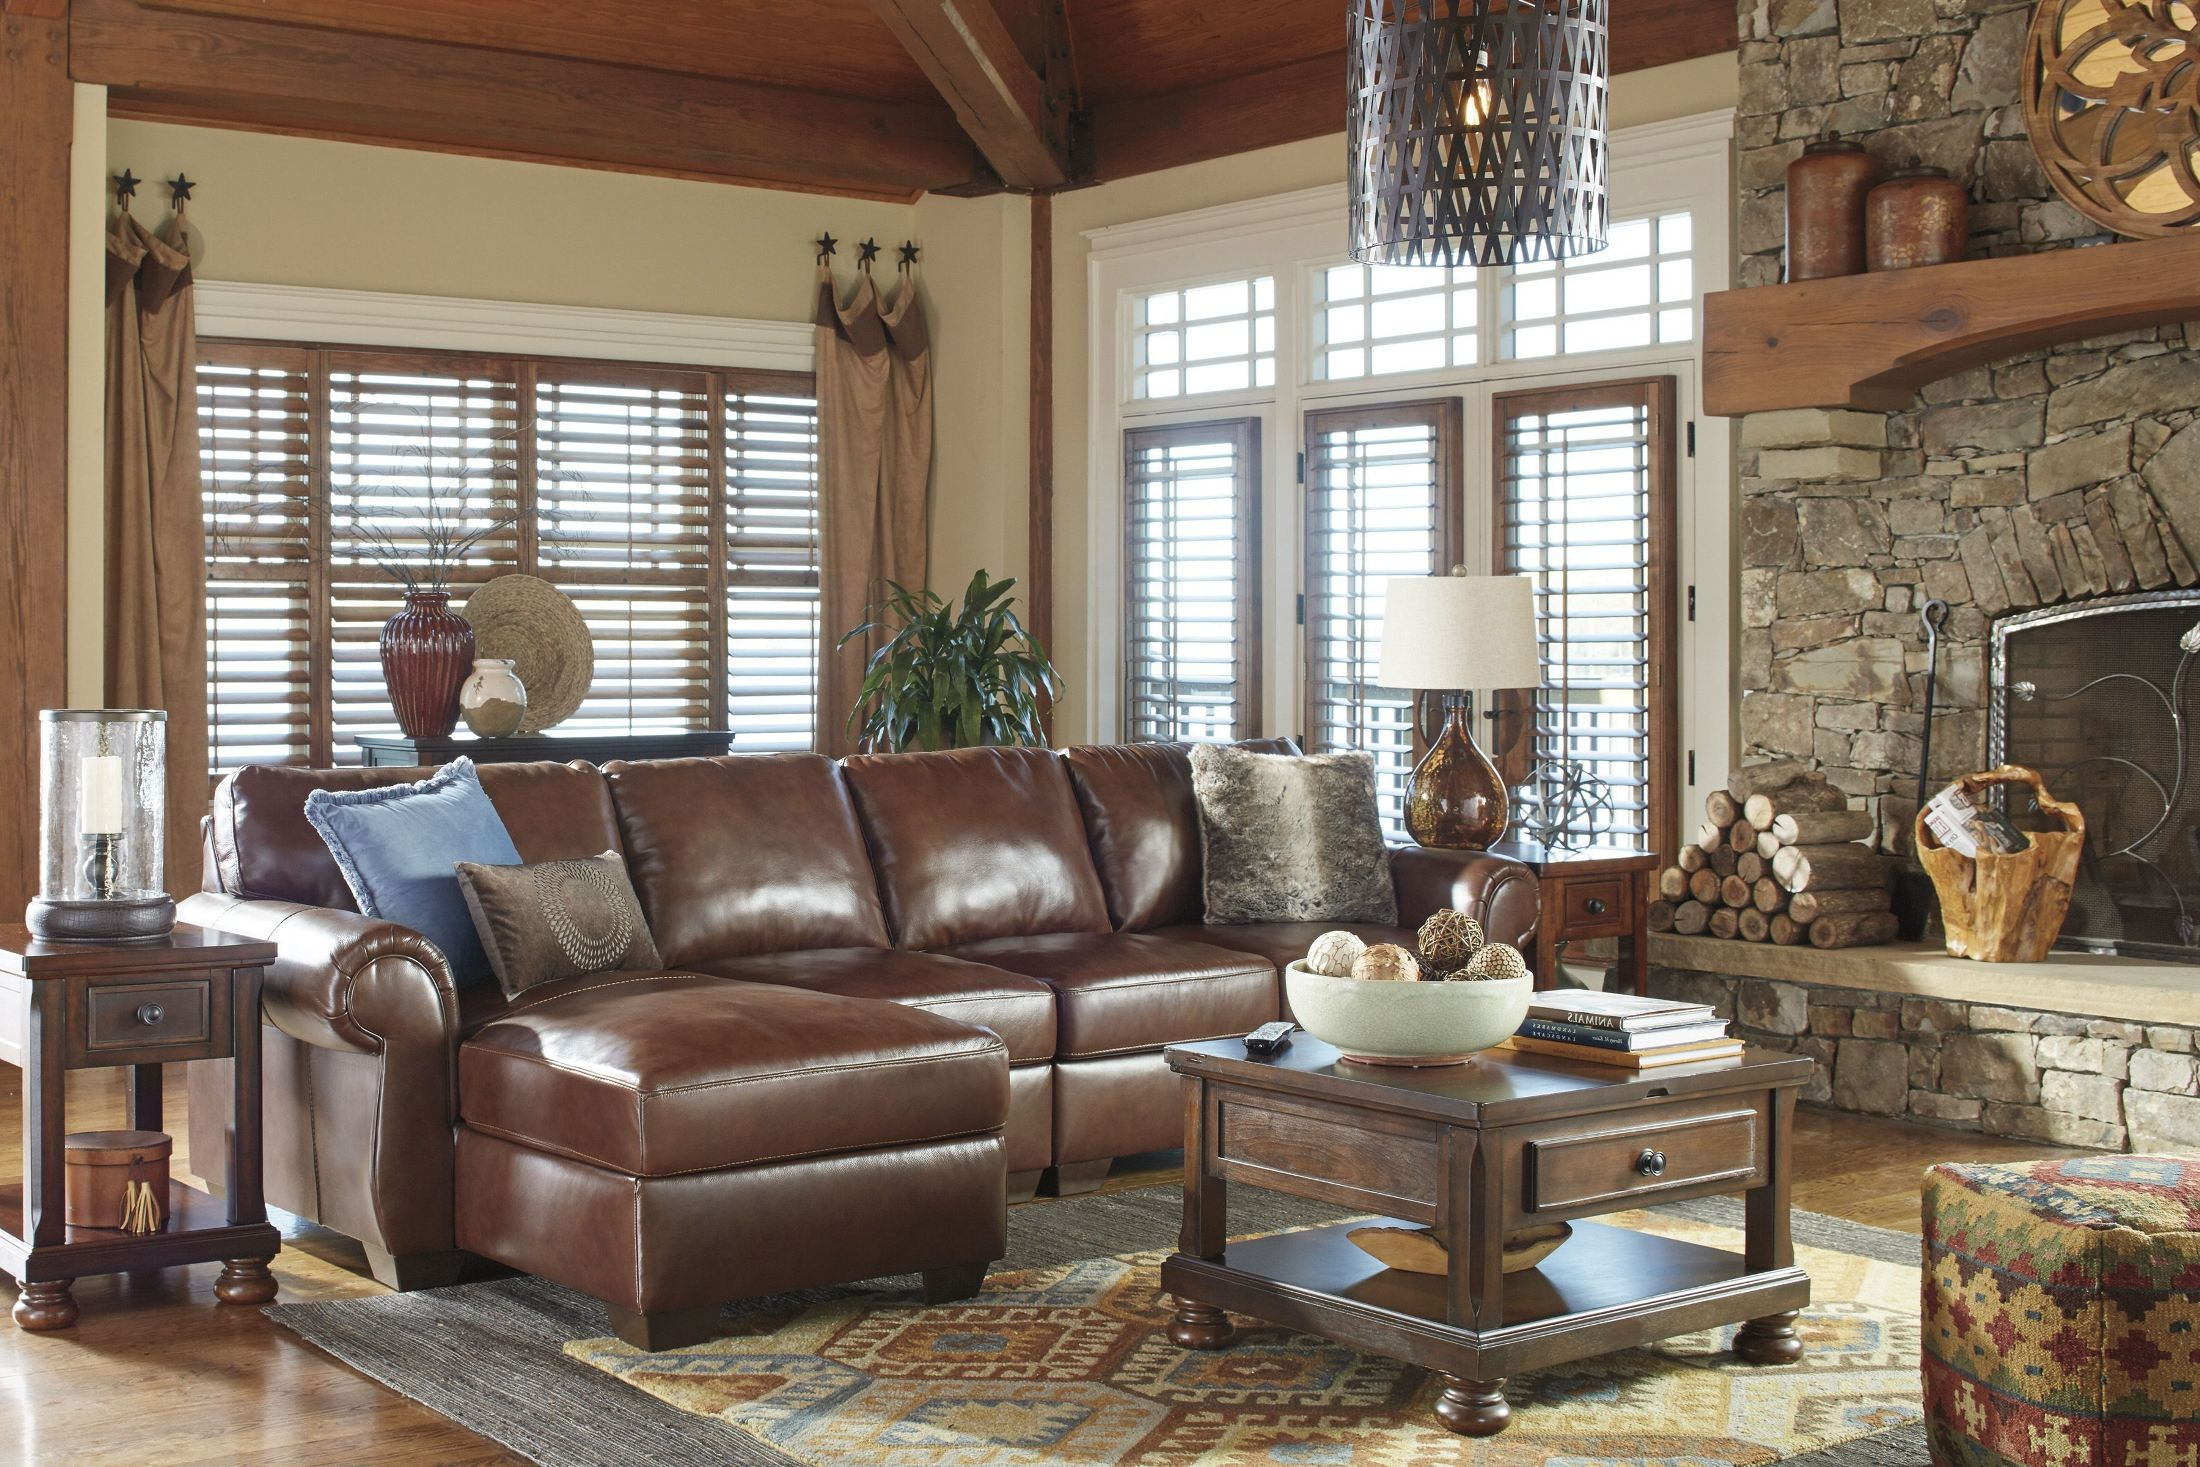 Lugoro saddle laf sectional 5060216 46 56 ashley for Affordable furniture 3 piece sectional in wyoming saddle